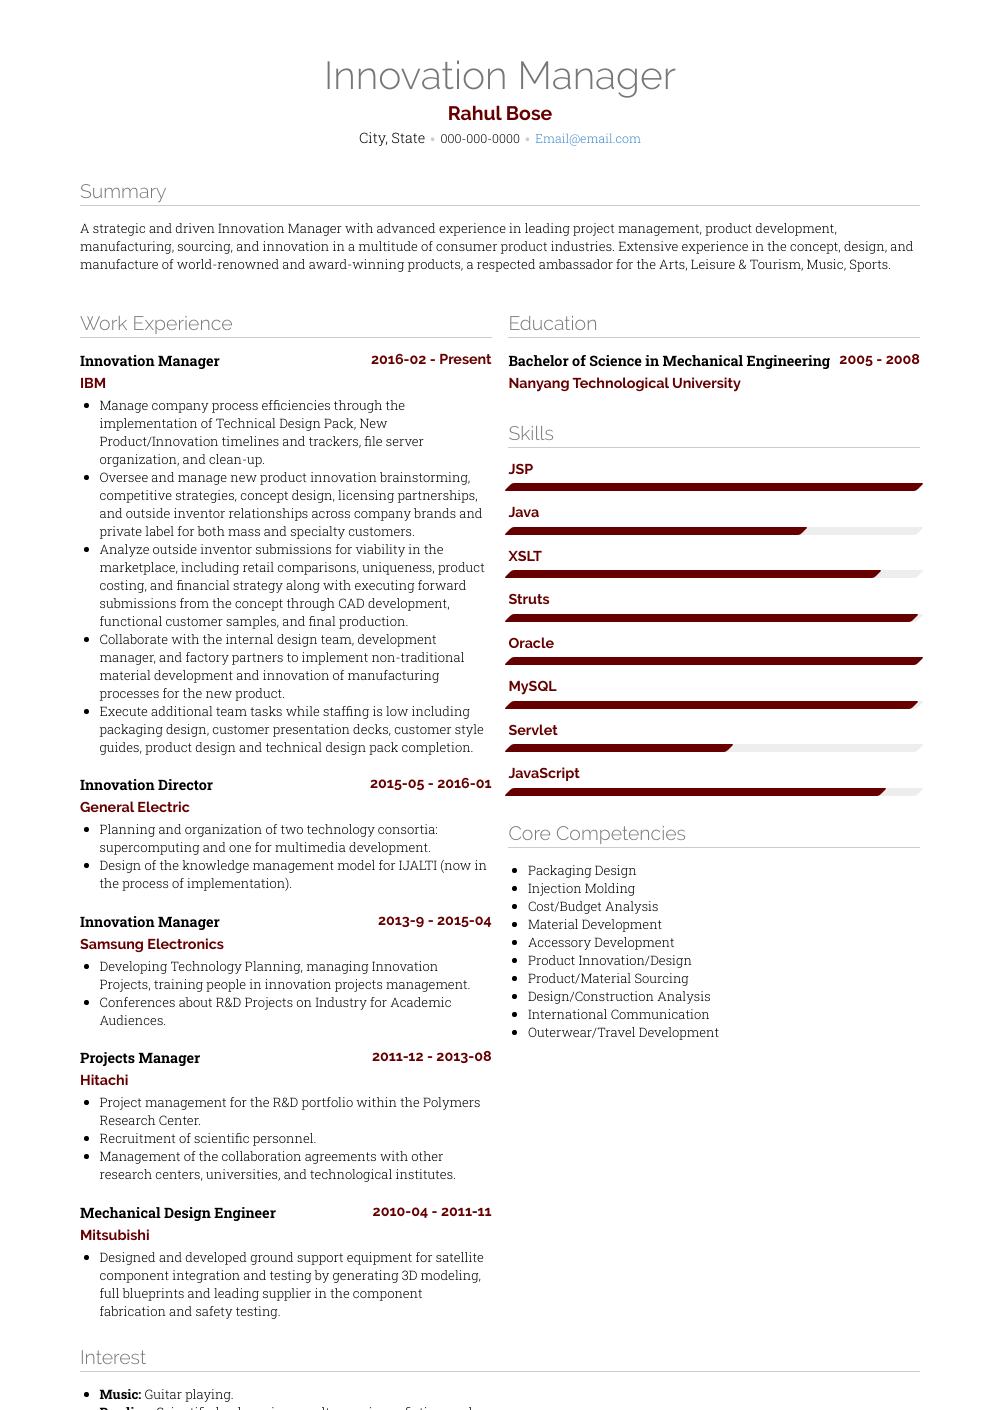 Innovation Manager Resume Sample and Template